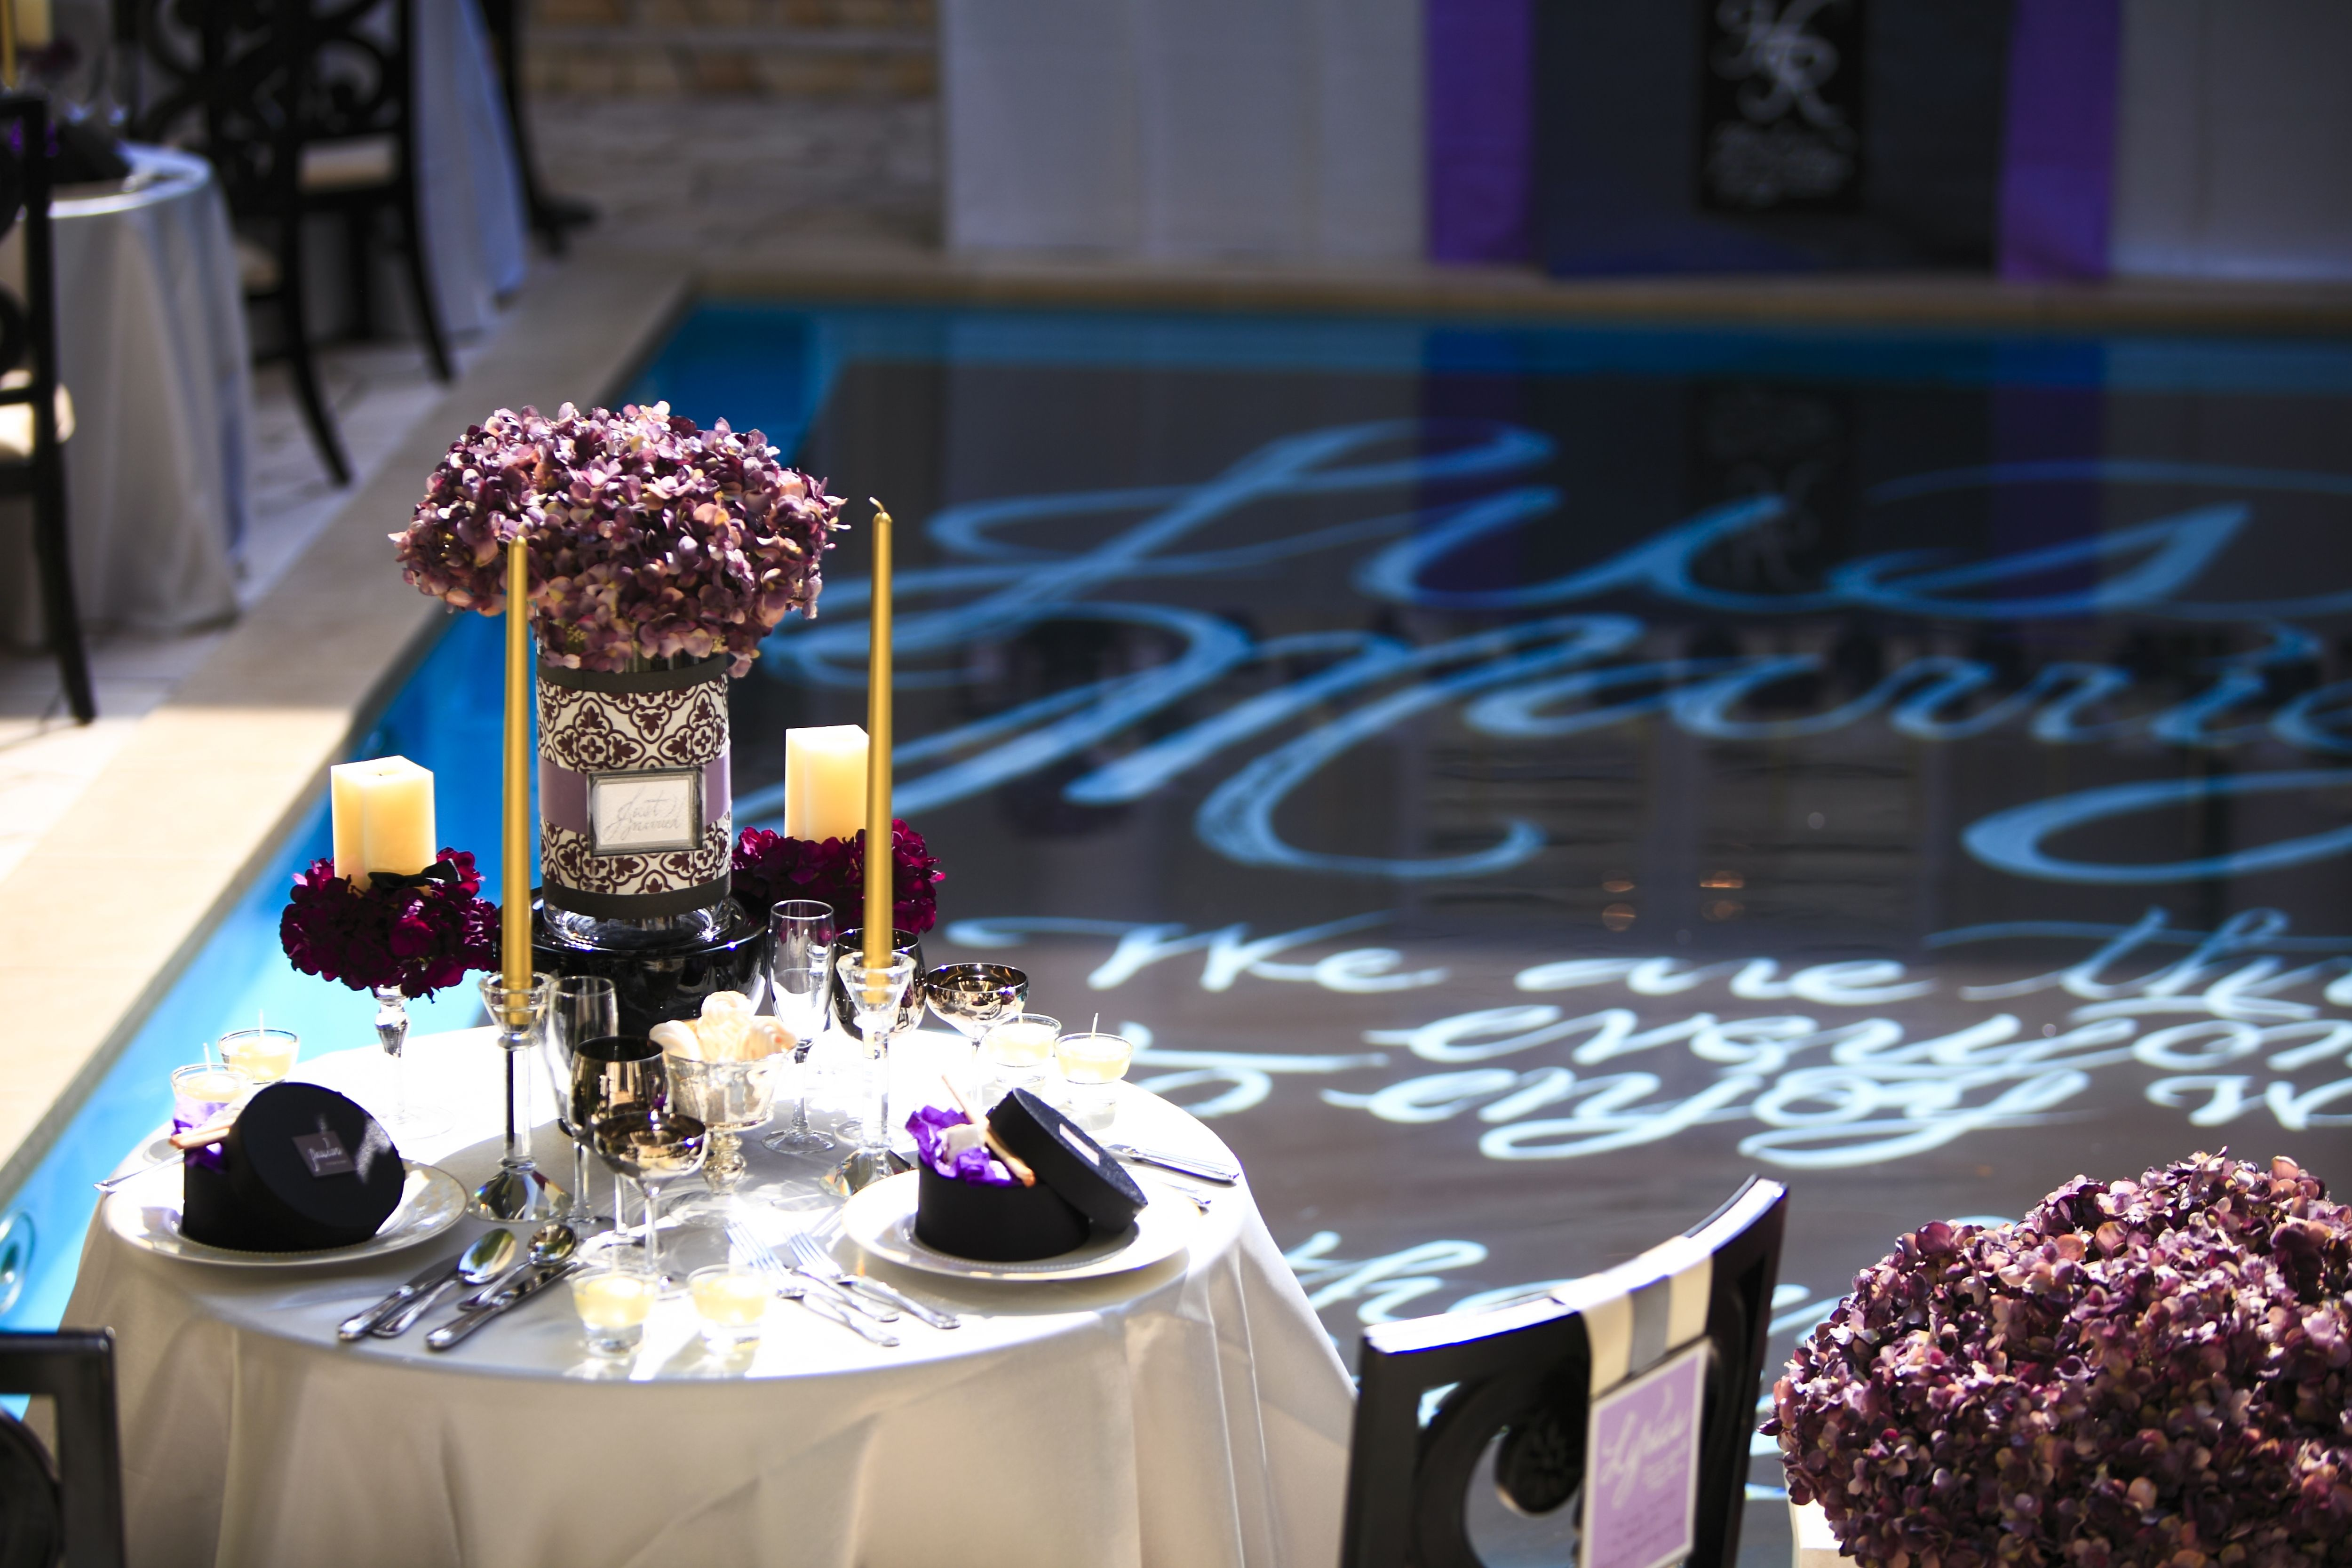 Purple and blue wedding decor  wedding coordinate purple WEDDING TRUNK OneHeart purple  Color